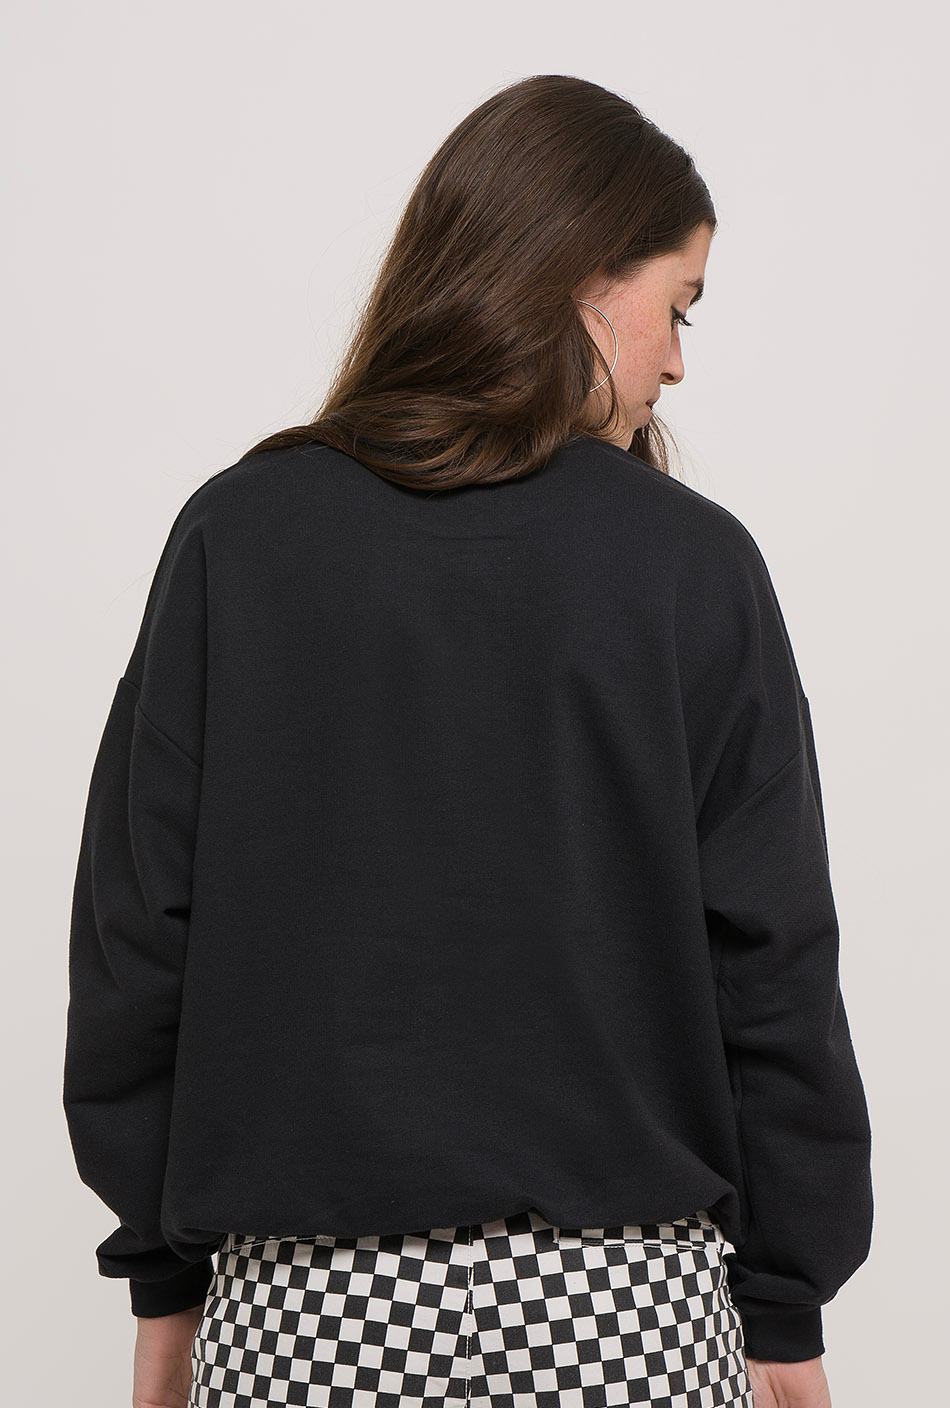 Black Hell sweatshirt